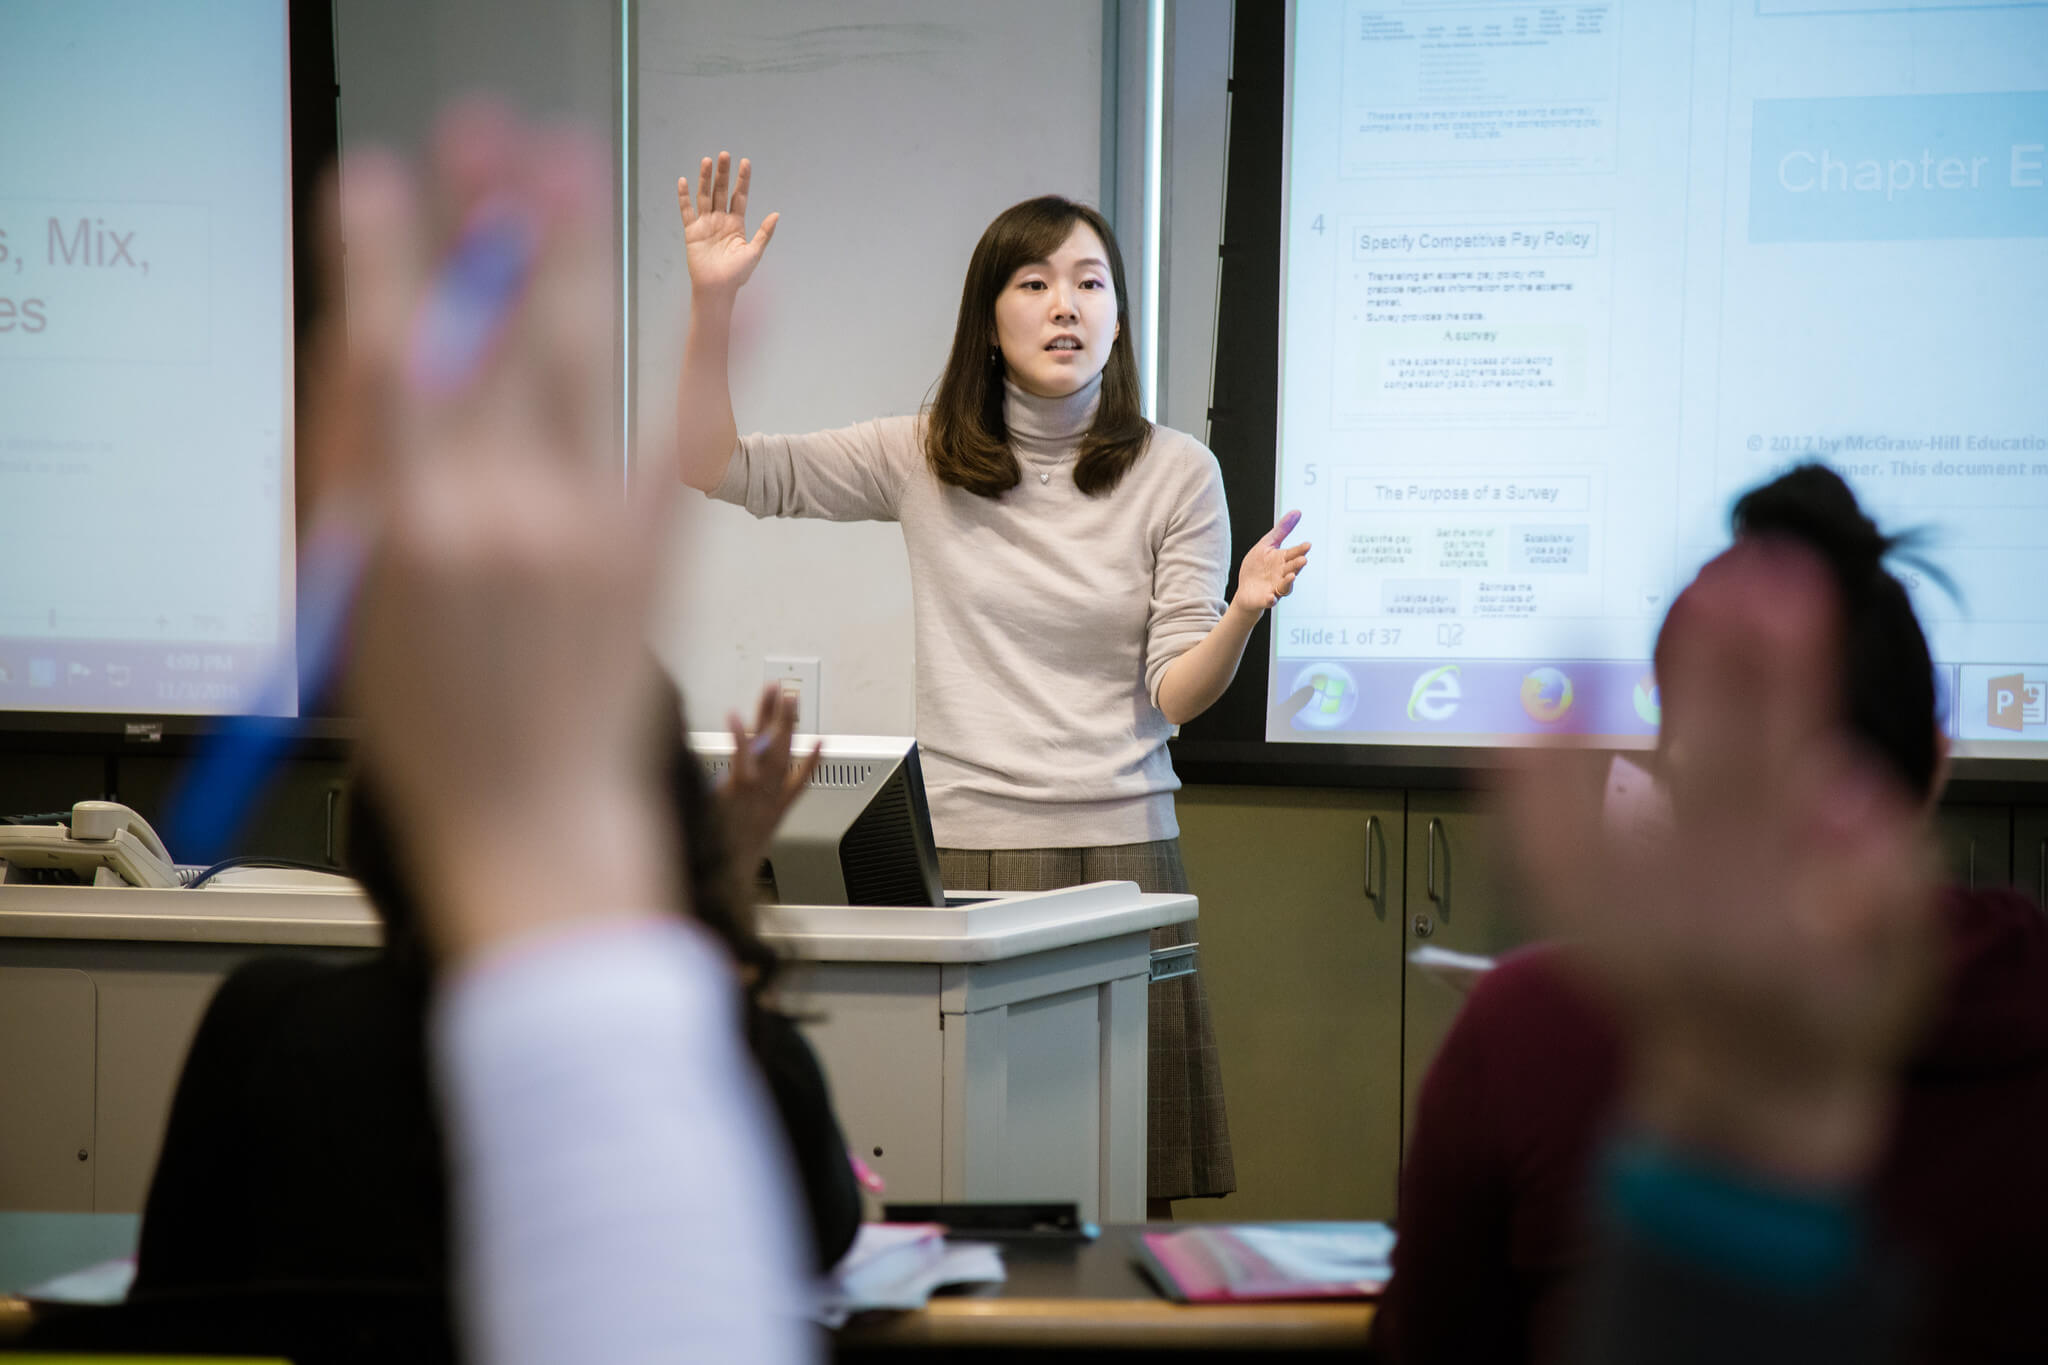 Female teacher lecturing a class in front of a projector screen